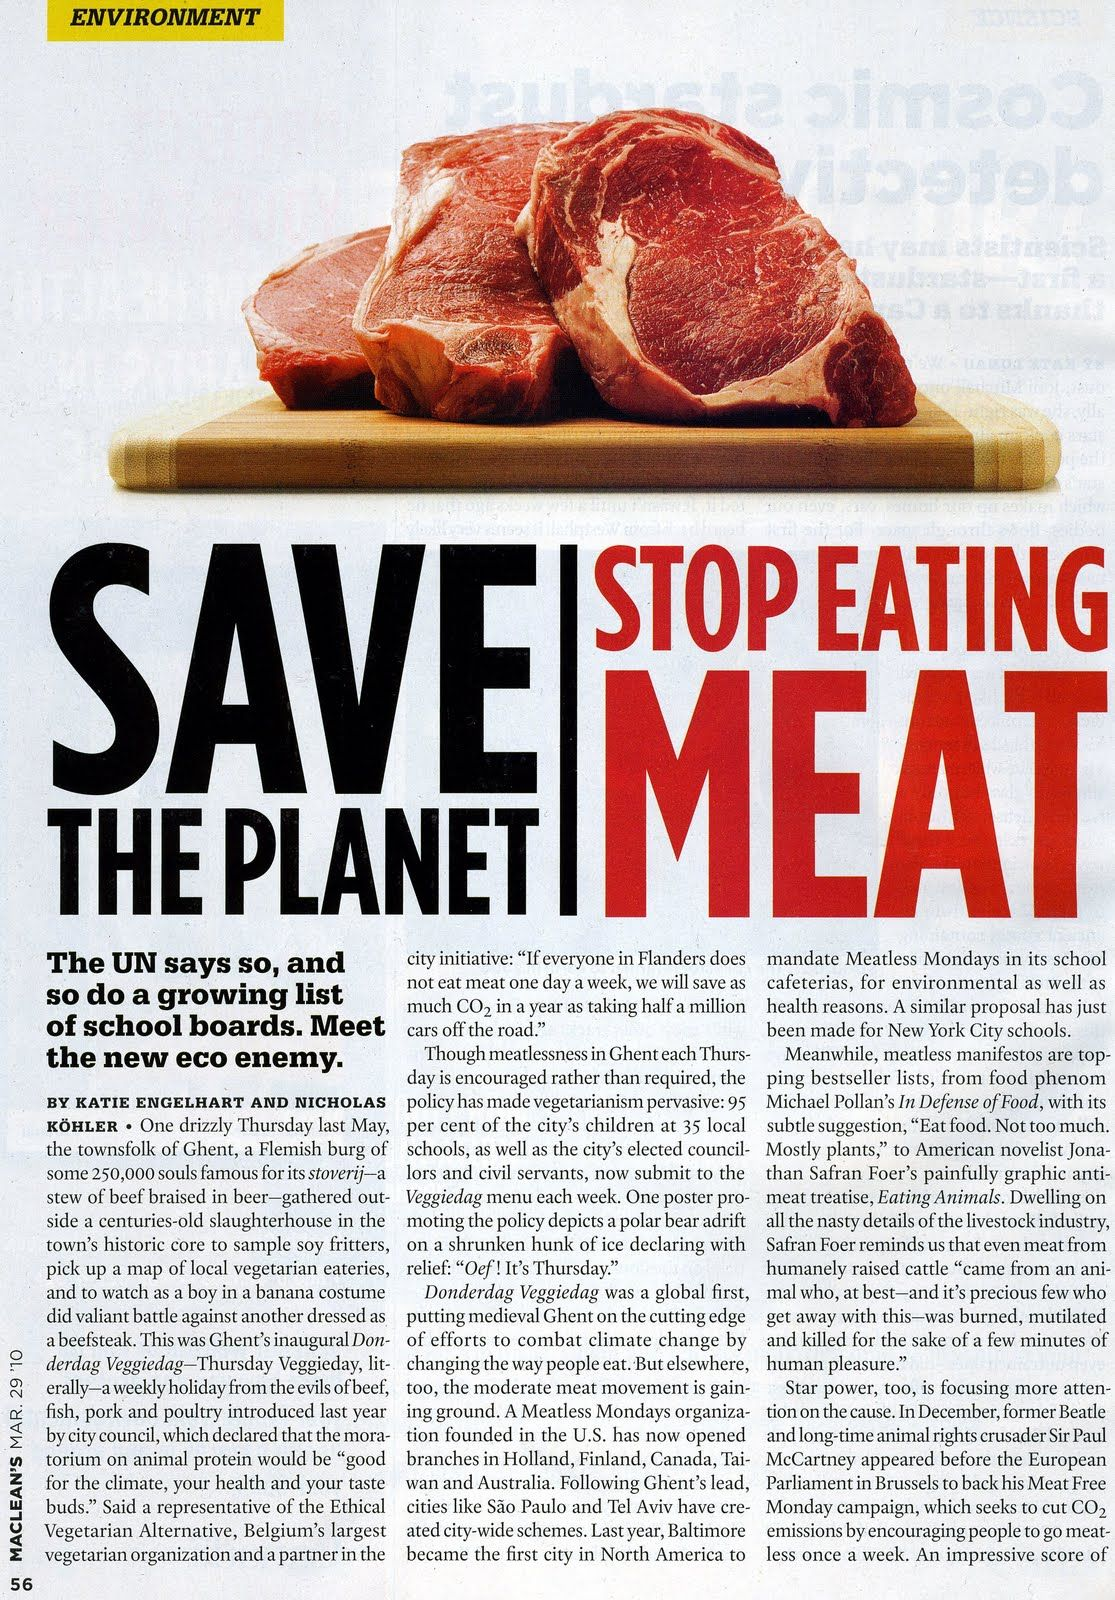 A magazine article urging people to stop eating meat to